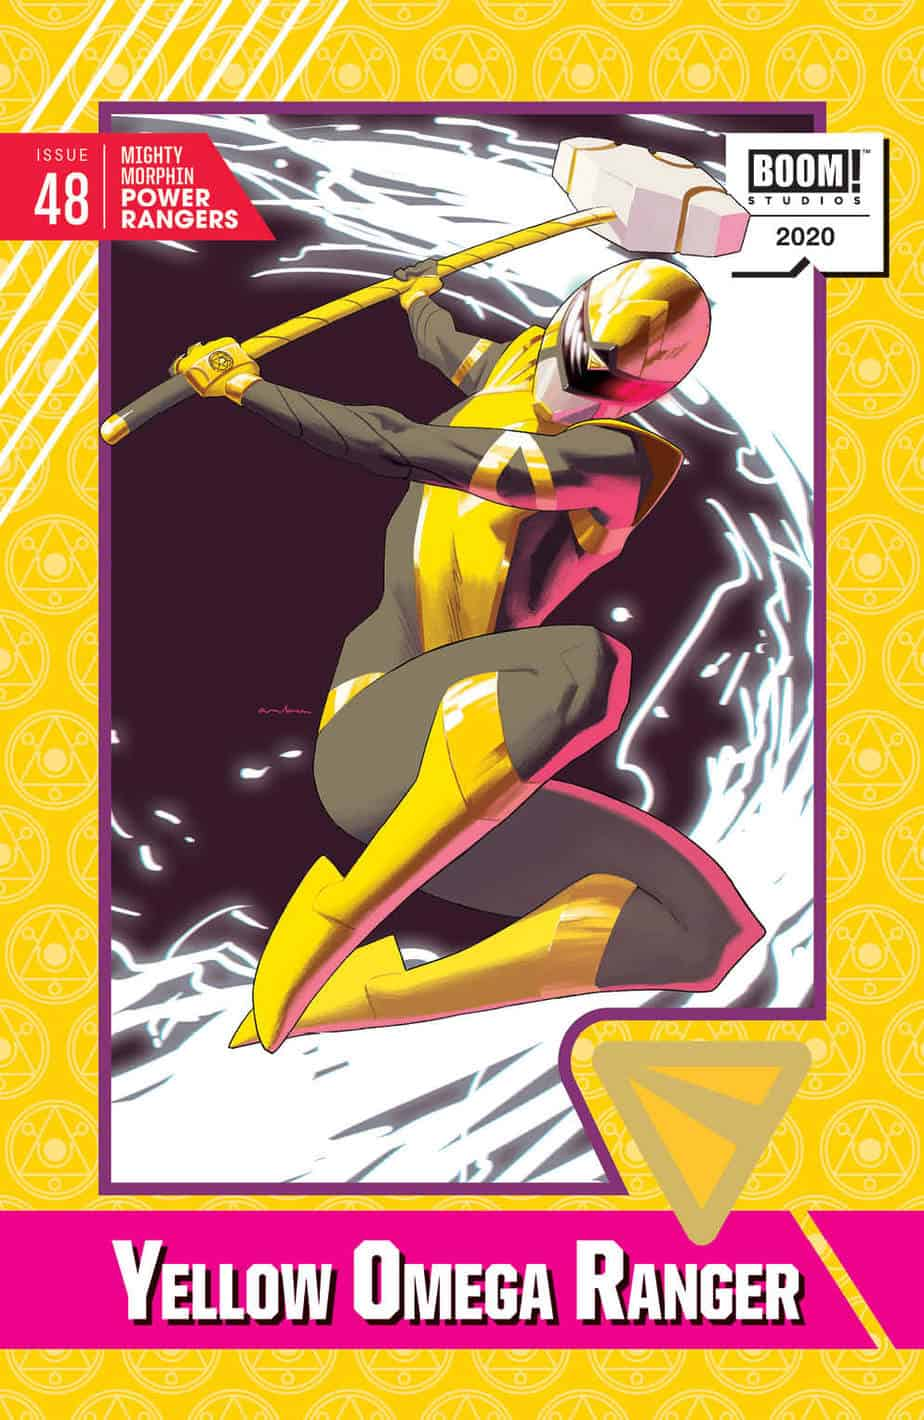 Mighty Morphin Power Rangers #48 - Trading Card Cover